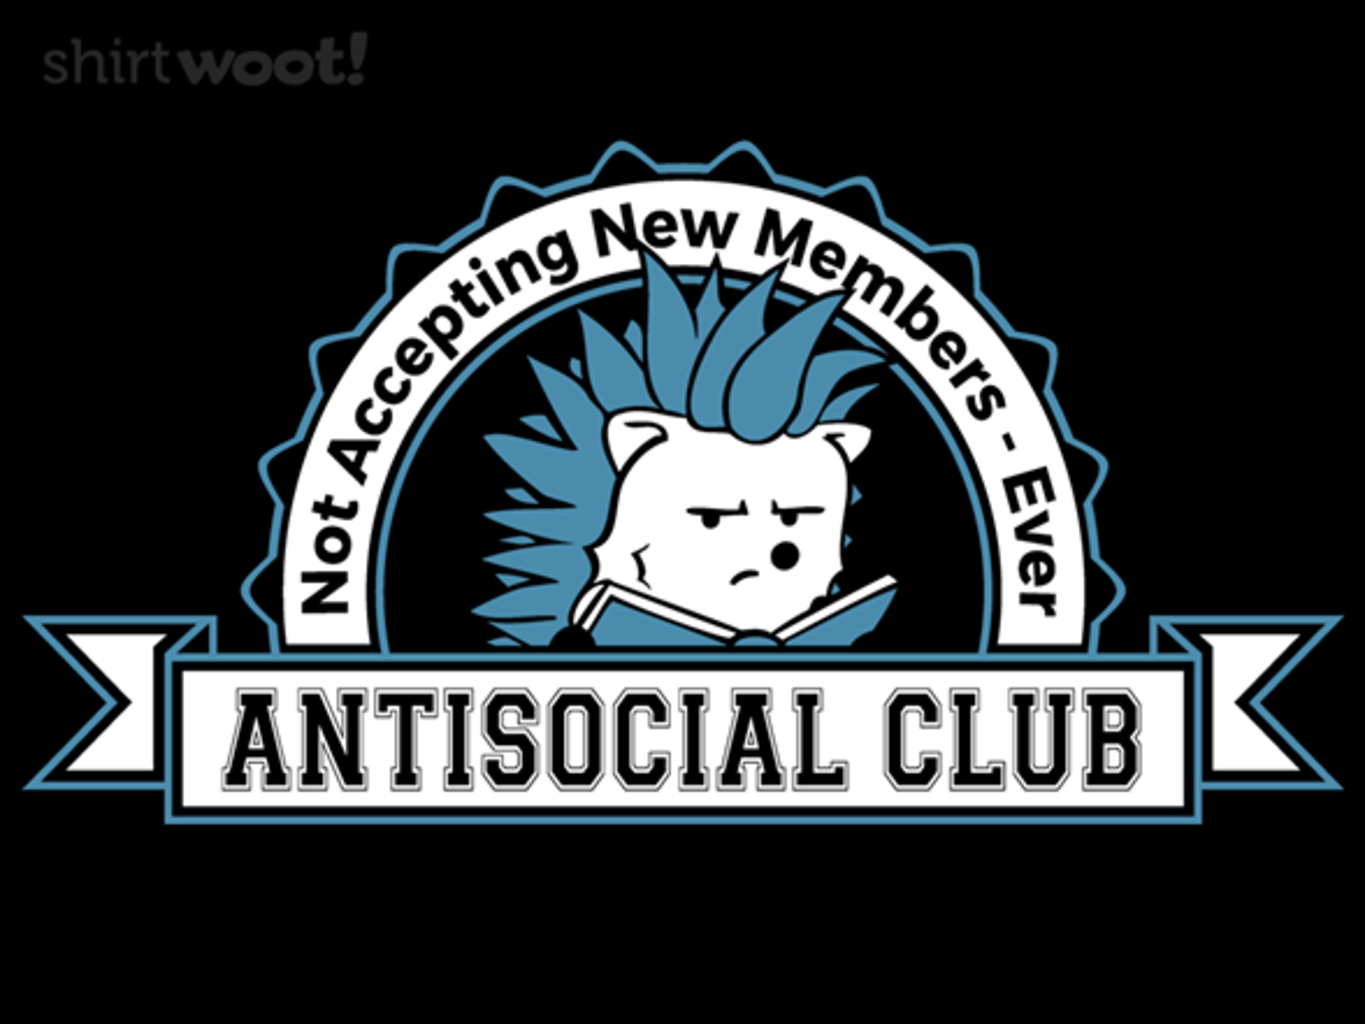 Woot!: Antisocial Club